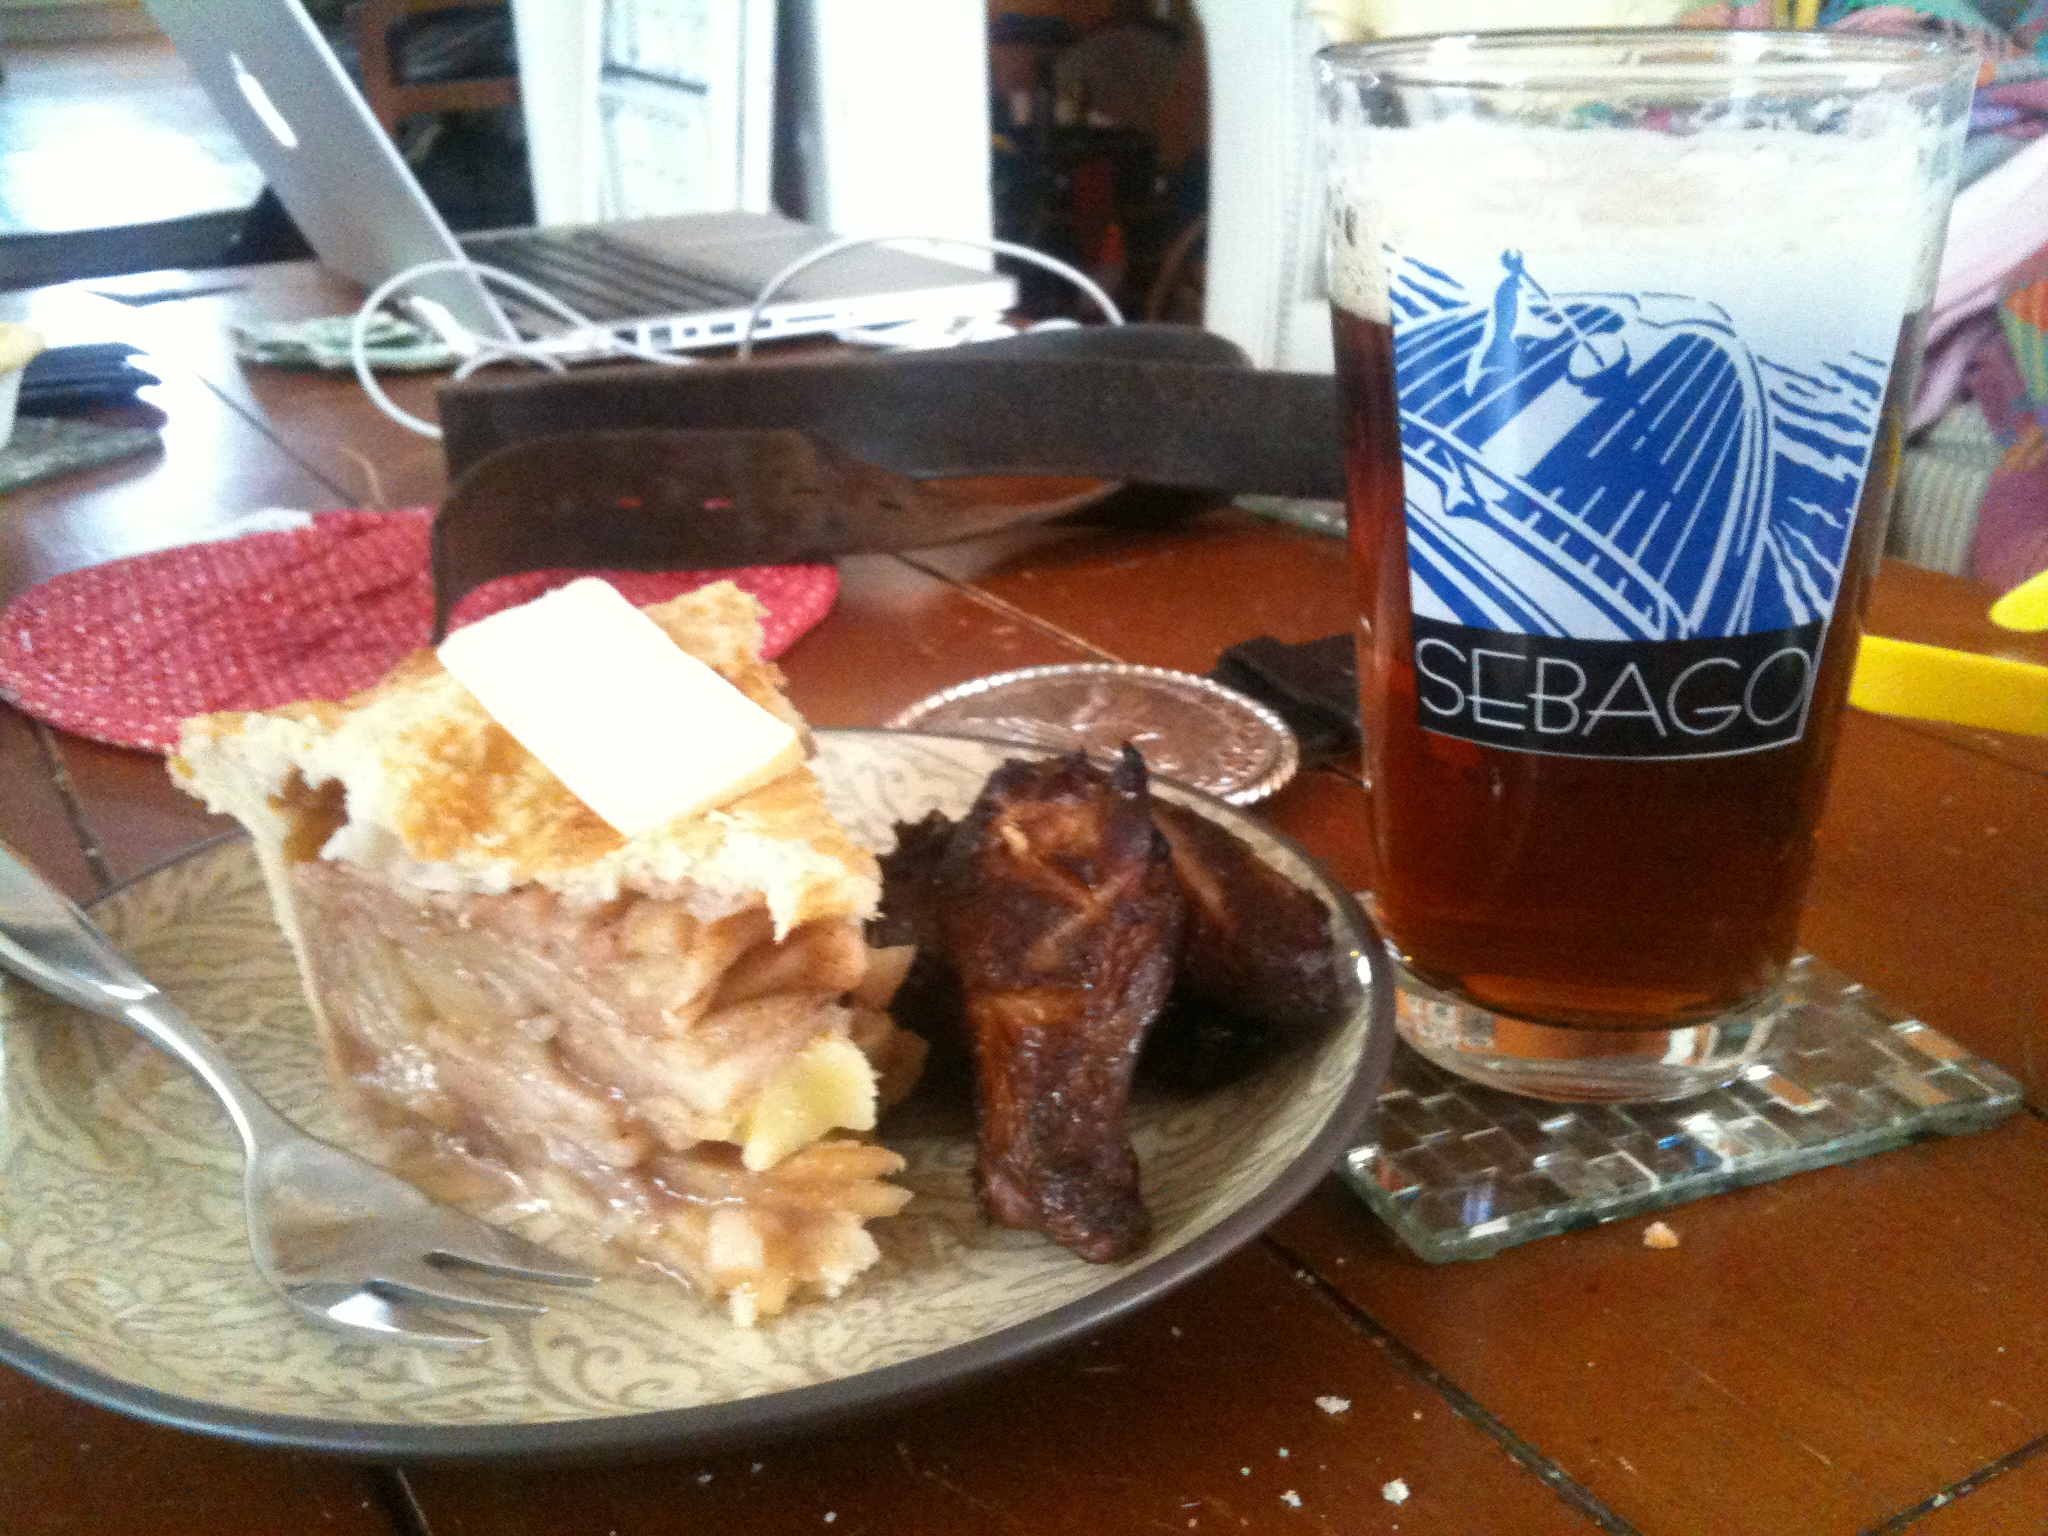 Brothers House - Portland, Maine :: Apple pie with cold smoked apples, cold smoked cheddar cheese, hot smoked brined chicken wings with a Sebago Slick Nick Winter Ale.  What a smoky breakfast!!